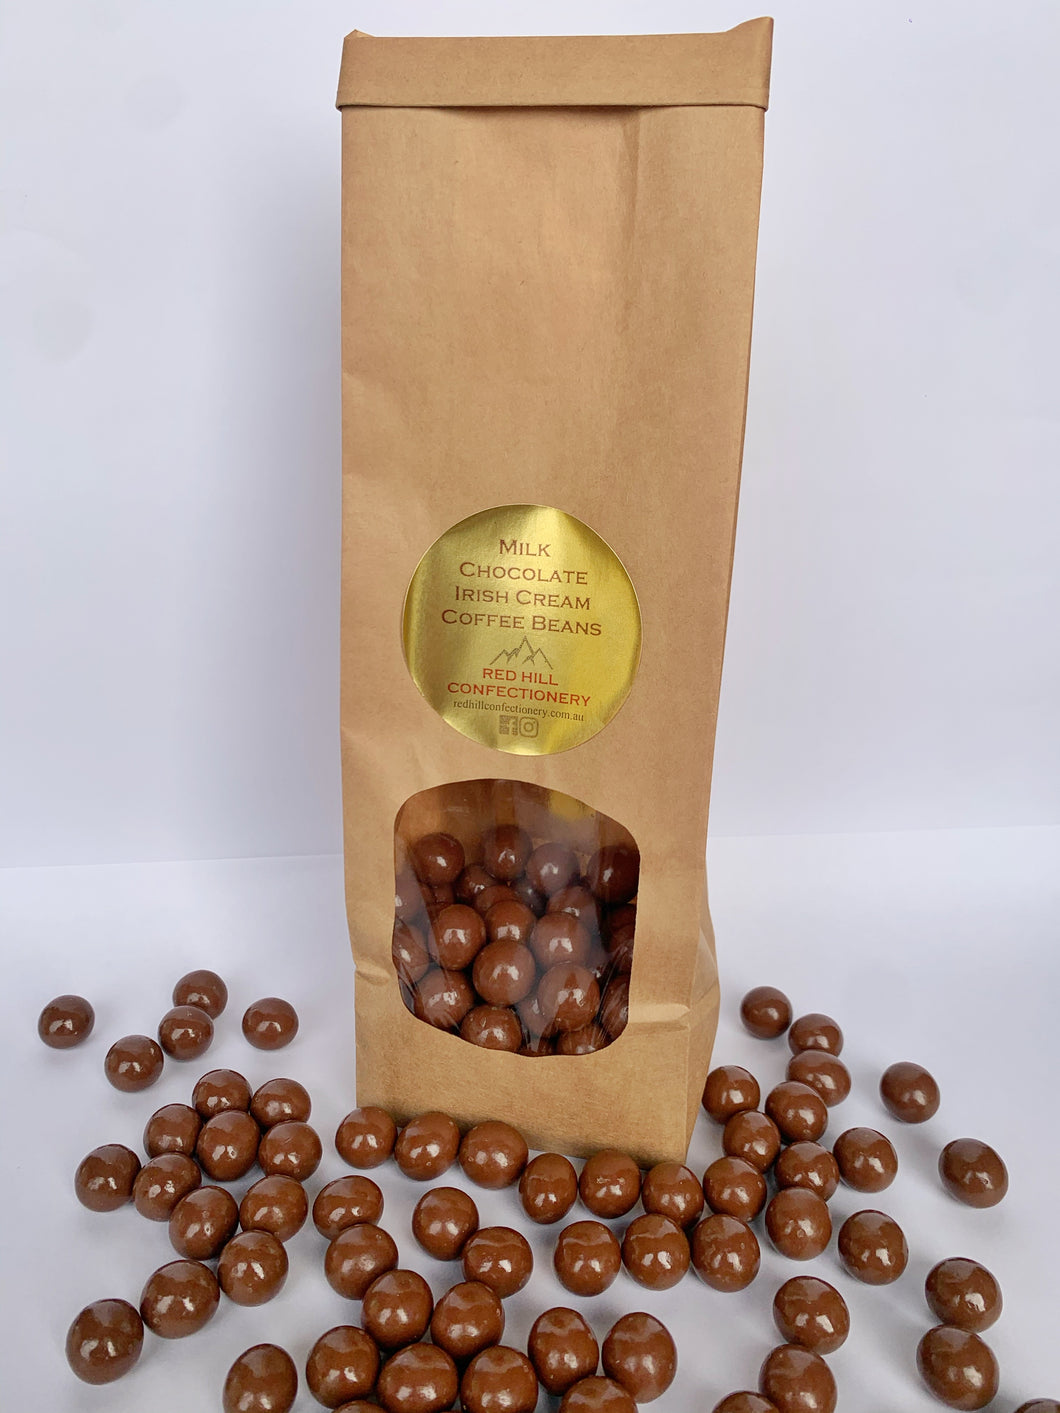 Red Hill Confectionery - Milk Chocolate Irish Cream Coffee Beans 220g Bag